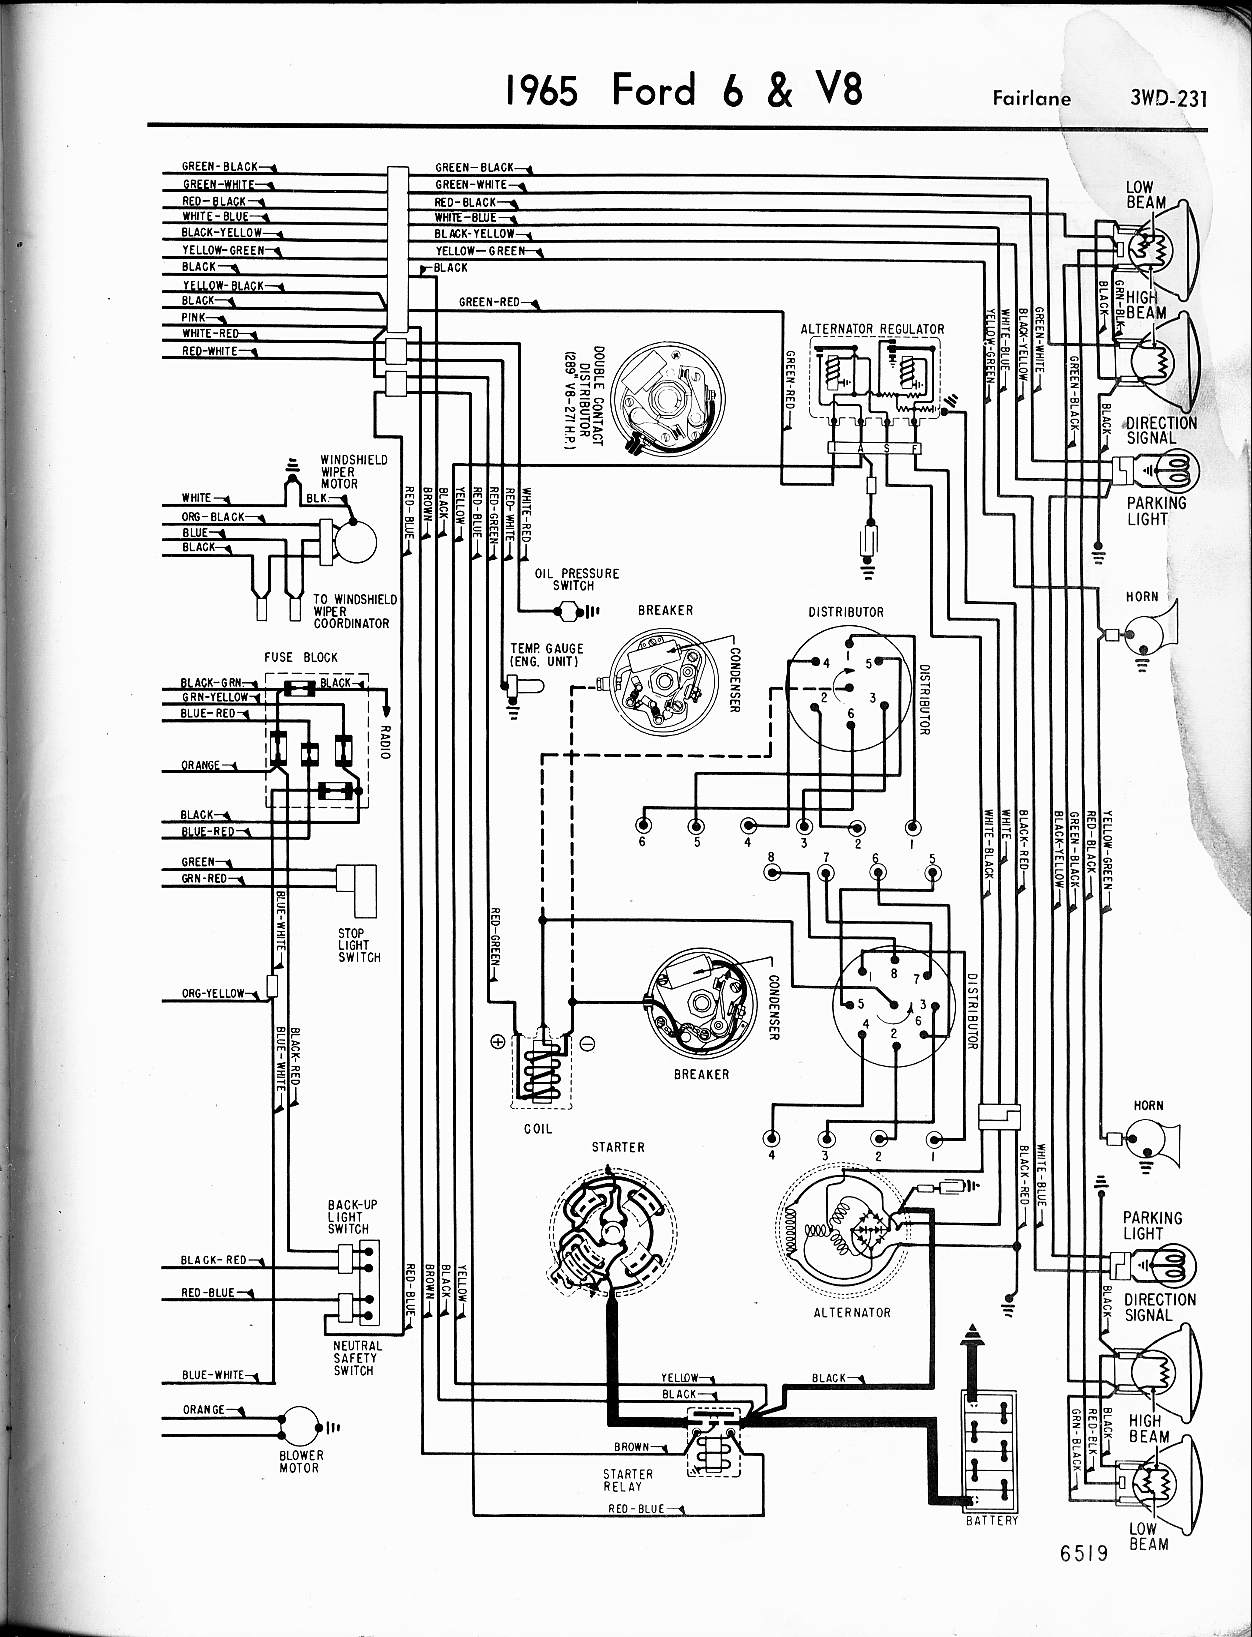 1968 Ford F100 Wiring Diagram Stereo together with  besides  likewise  in addition 1976 Caprice Wiring Diagram Free Download Schematic. on 65 impala on 20